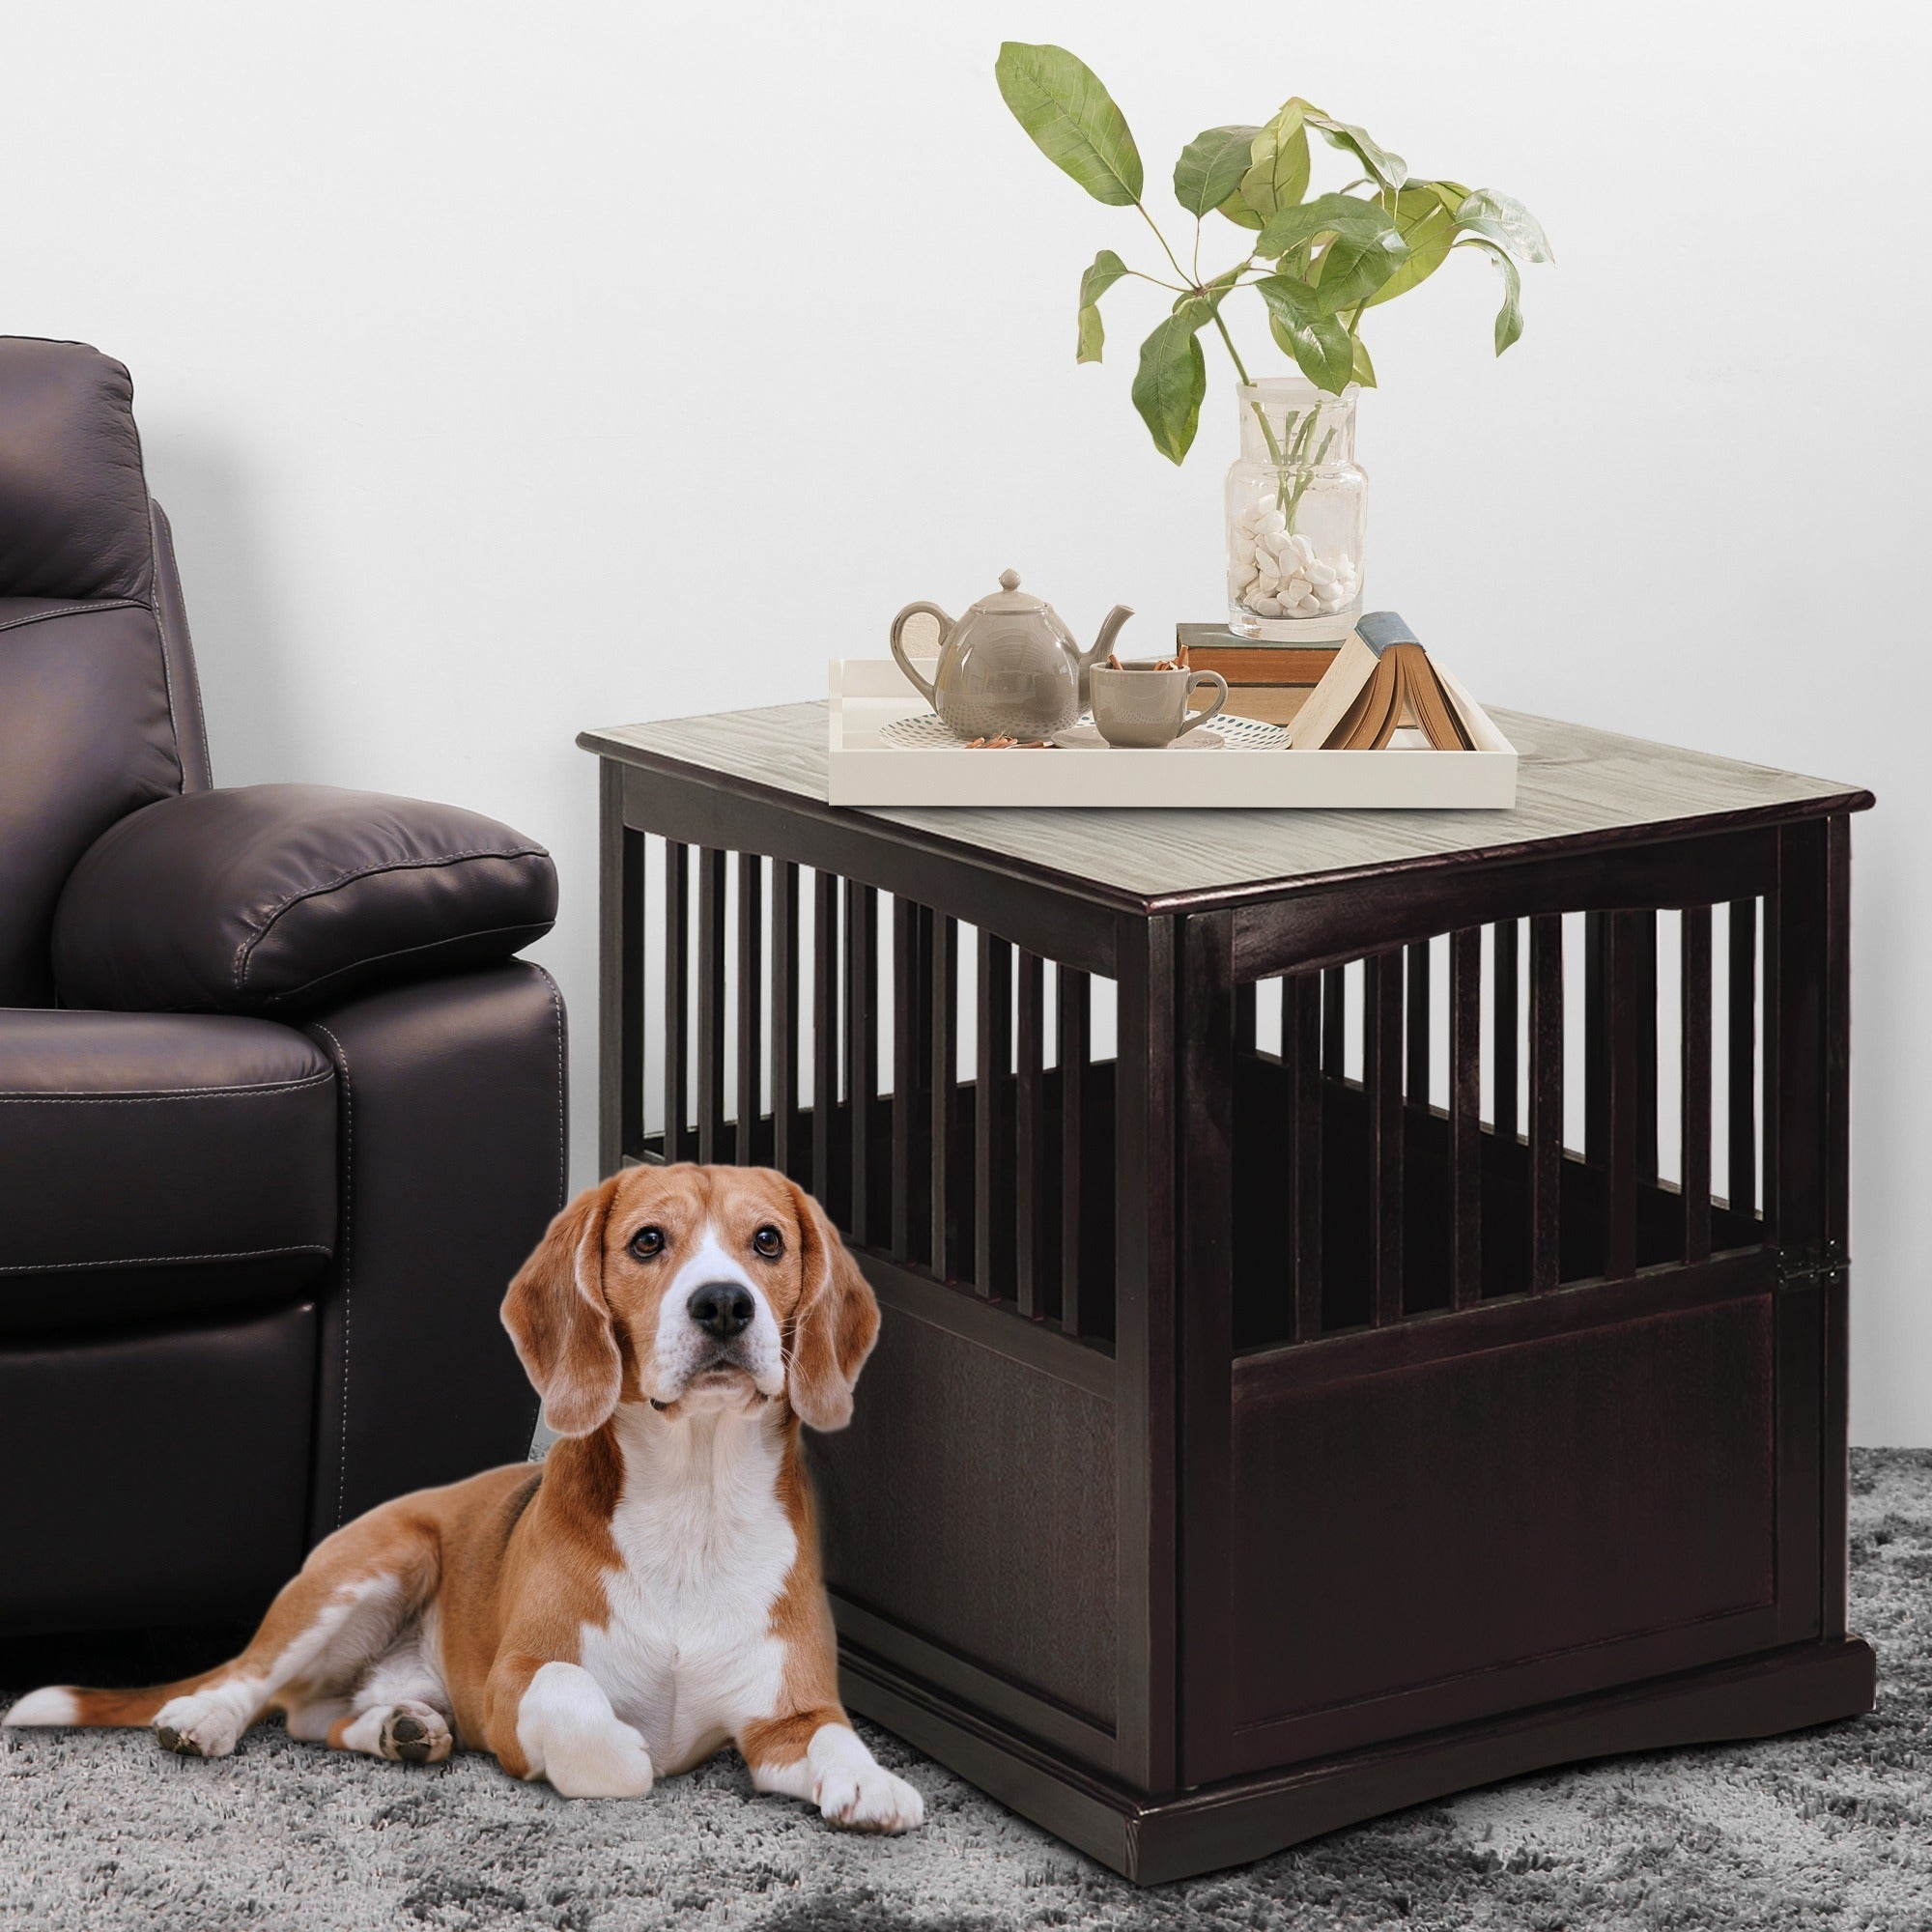 Shop Wooden End Table And Pet Crate   Free Shipping Today   Overstock.com    7916025